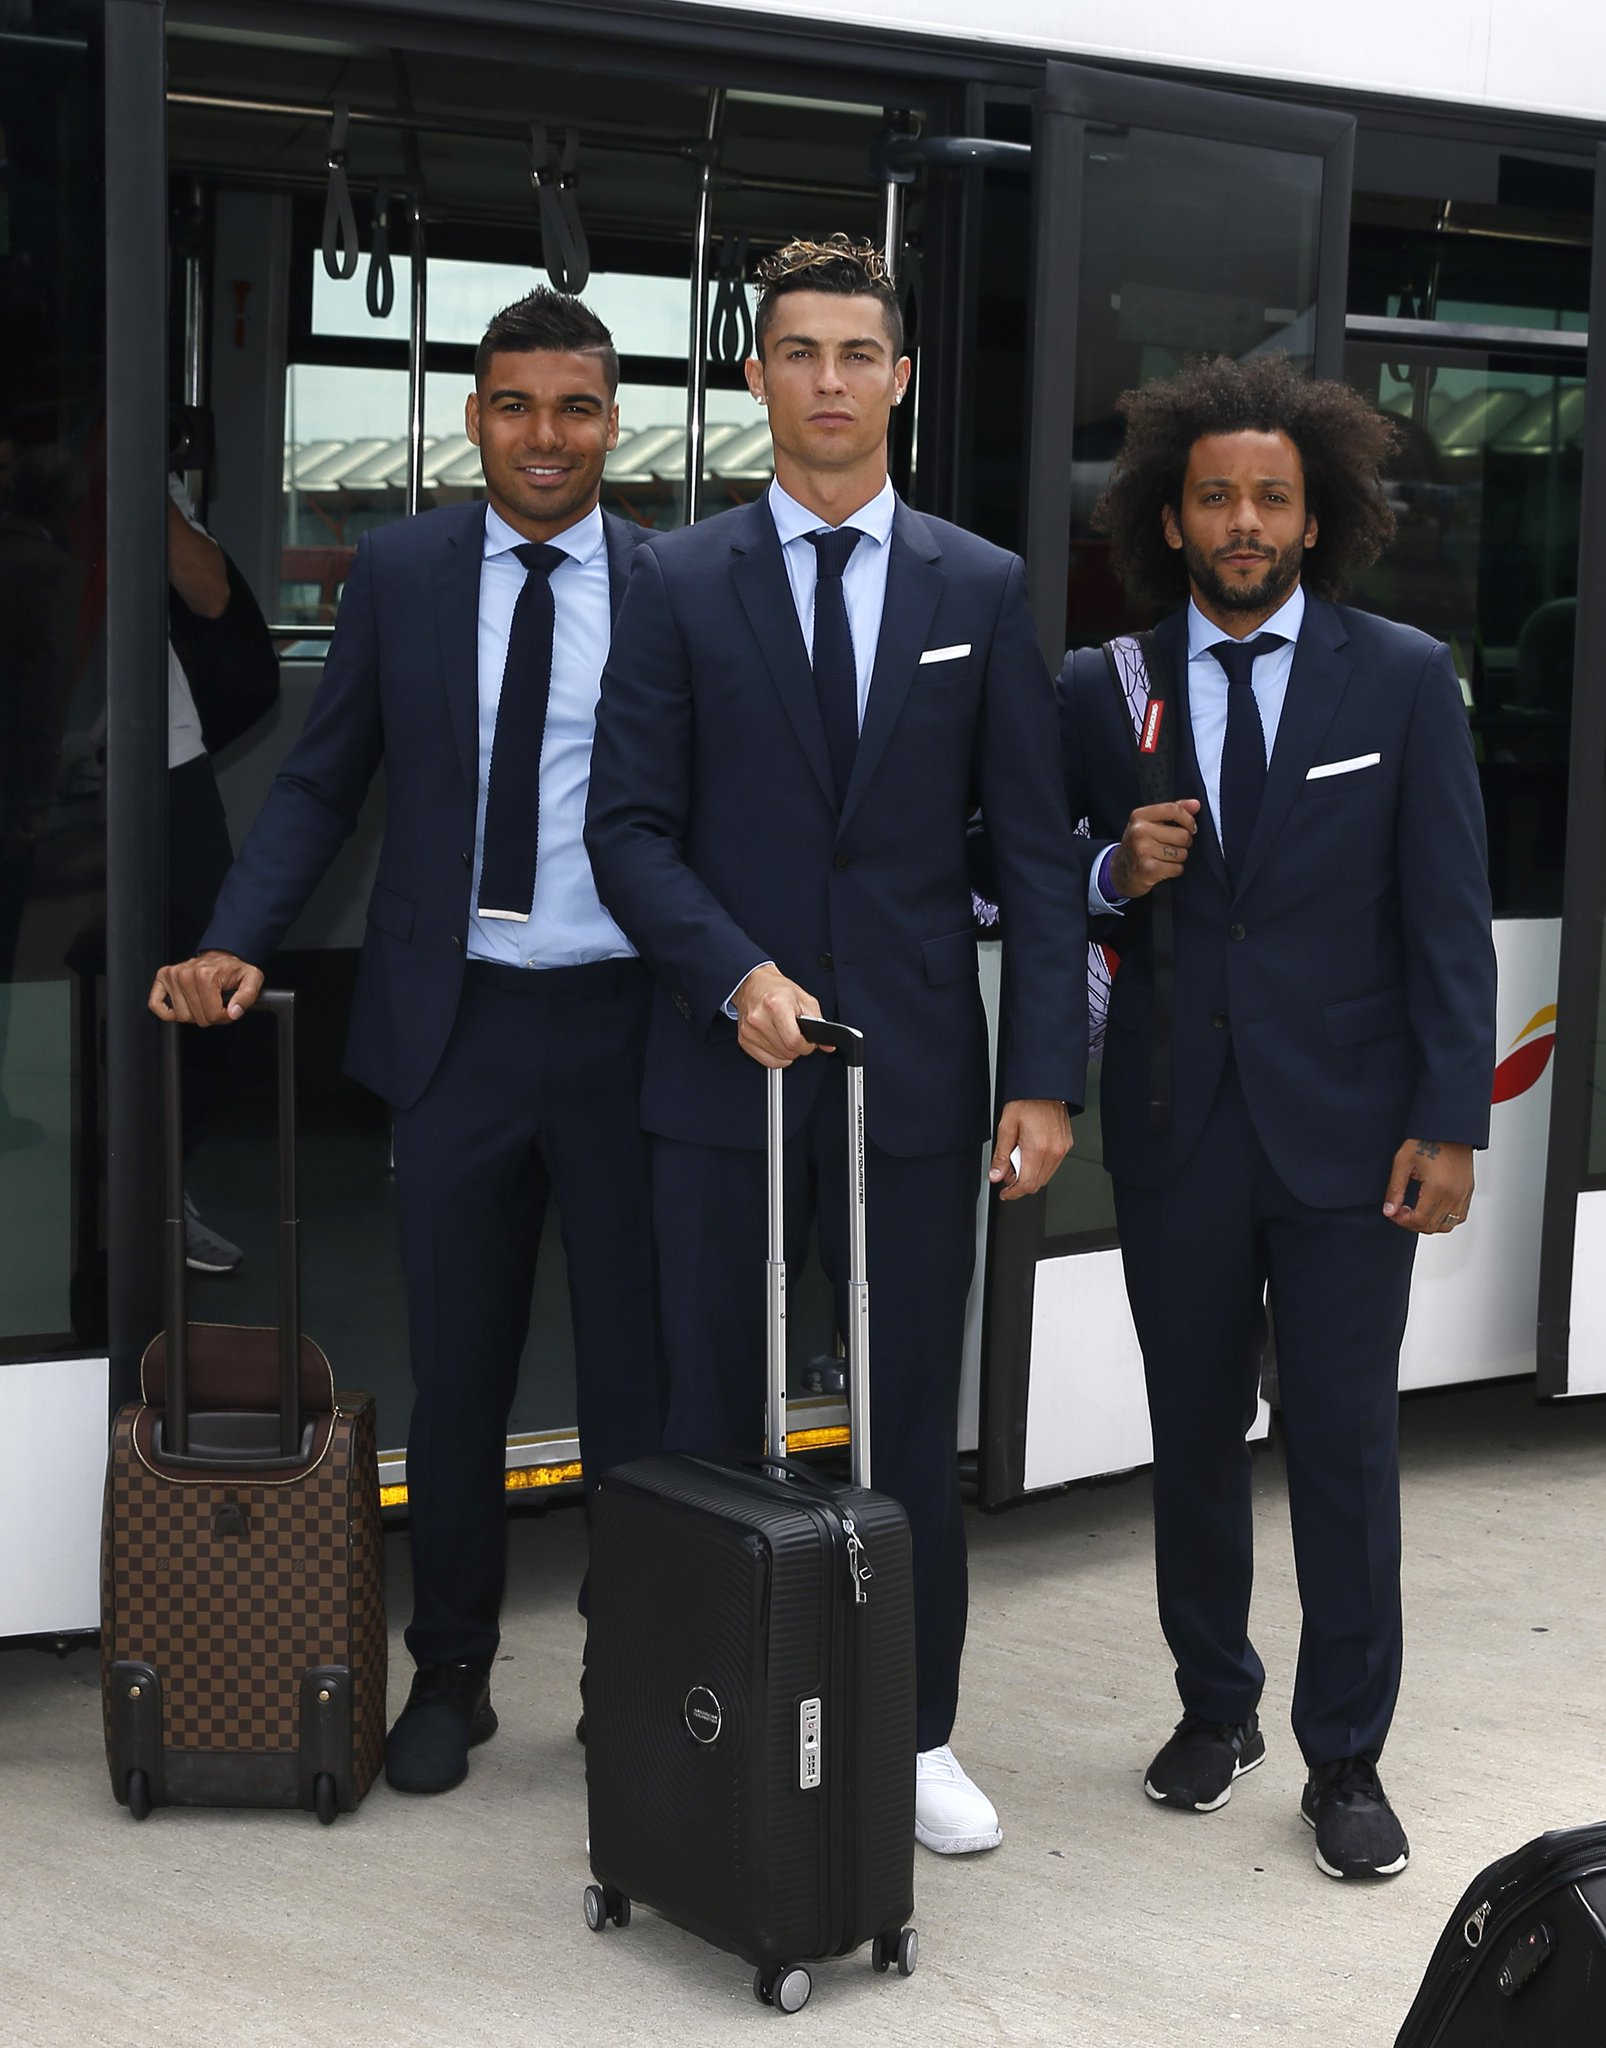 Real Madrid ready for business ��  #UCLfinal https://t.co/1RhN8h3OeR